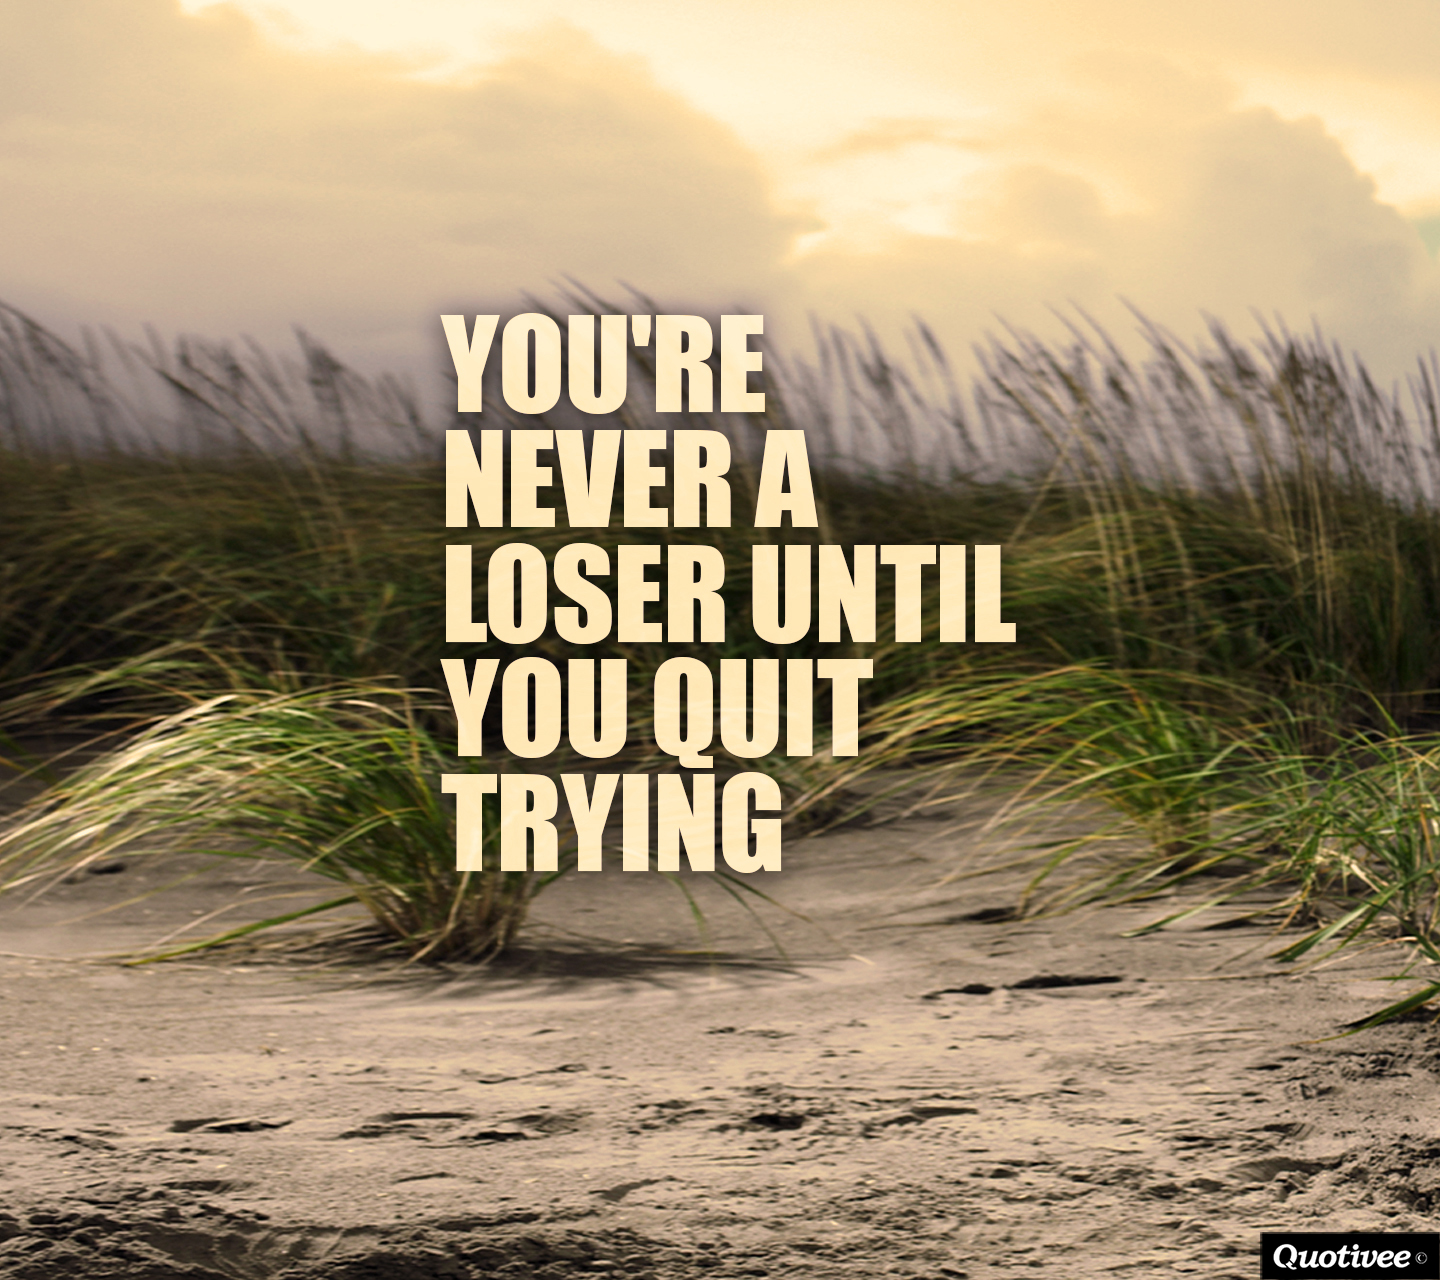 I Quit Quotes Wallpaper You Re Never A Loser Until You Quit Trying Inspirational